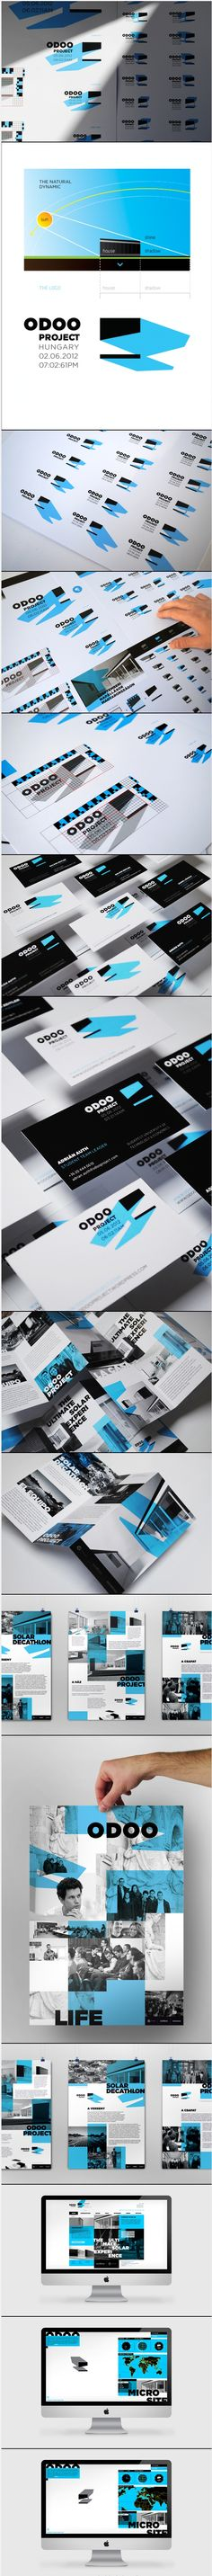 Odooproject Identity -  love the lines and dimension.